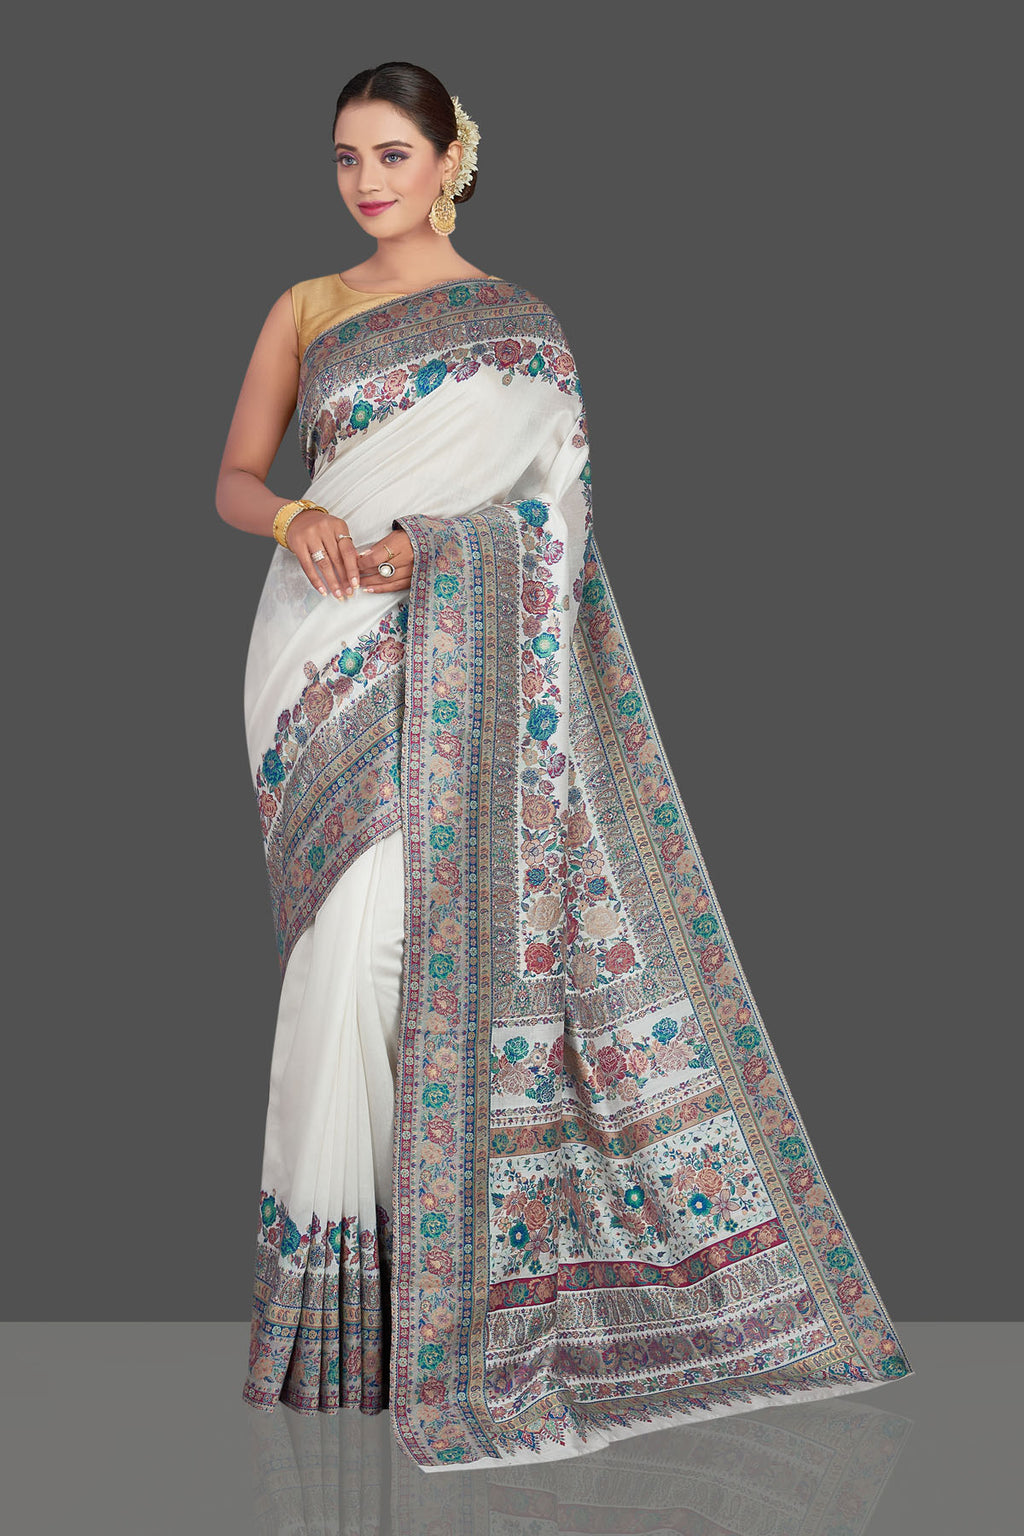 Buy stunning off-white Kani weave tussar muga silk sari online in USA. Make your presence felt on special occasions in beautiful embroidered sarees, handwoven saris, pure silk saris, tussar sarees from Pure Elegance Indian saree store in USA.-full view